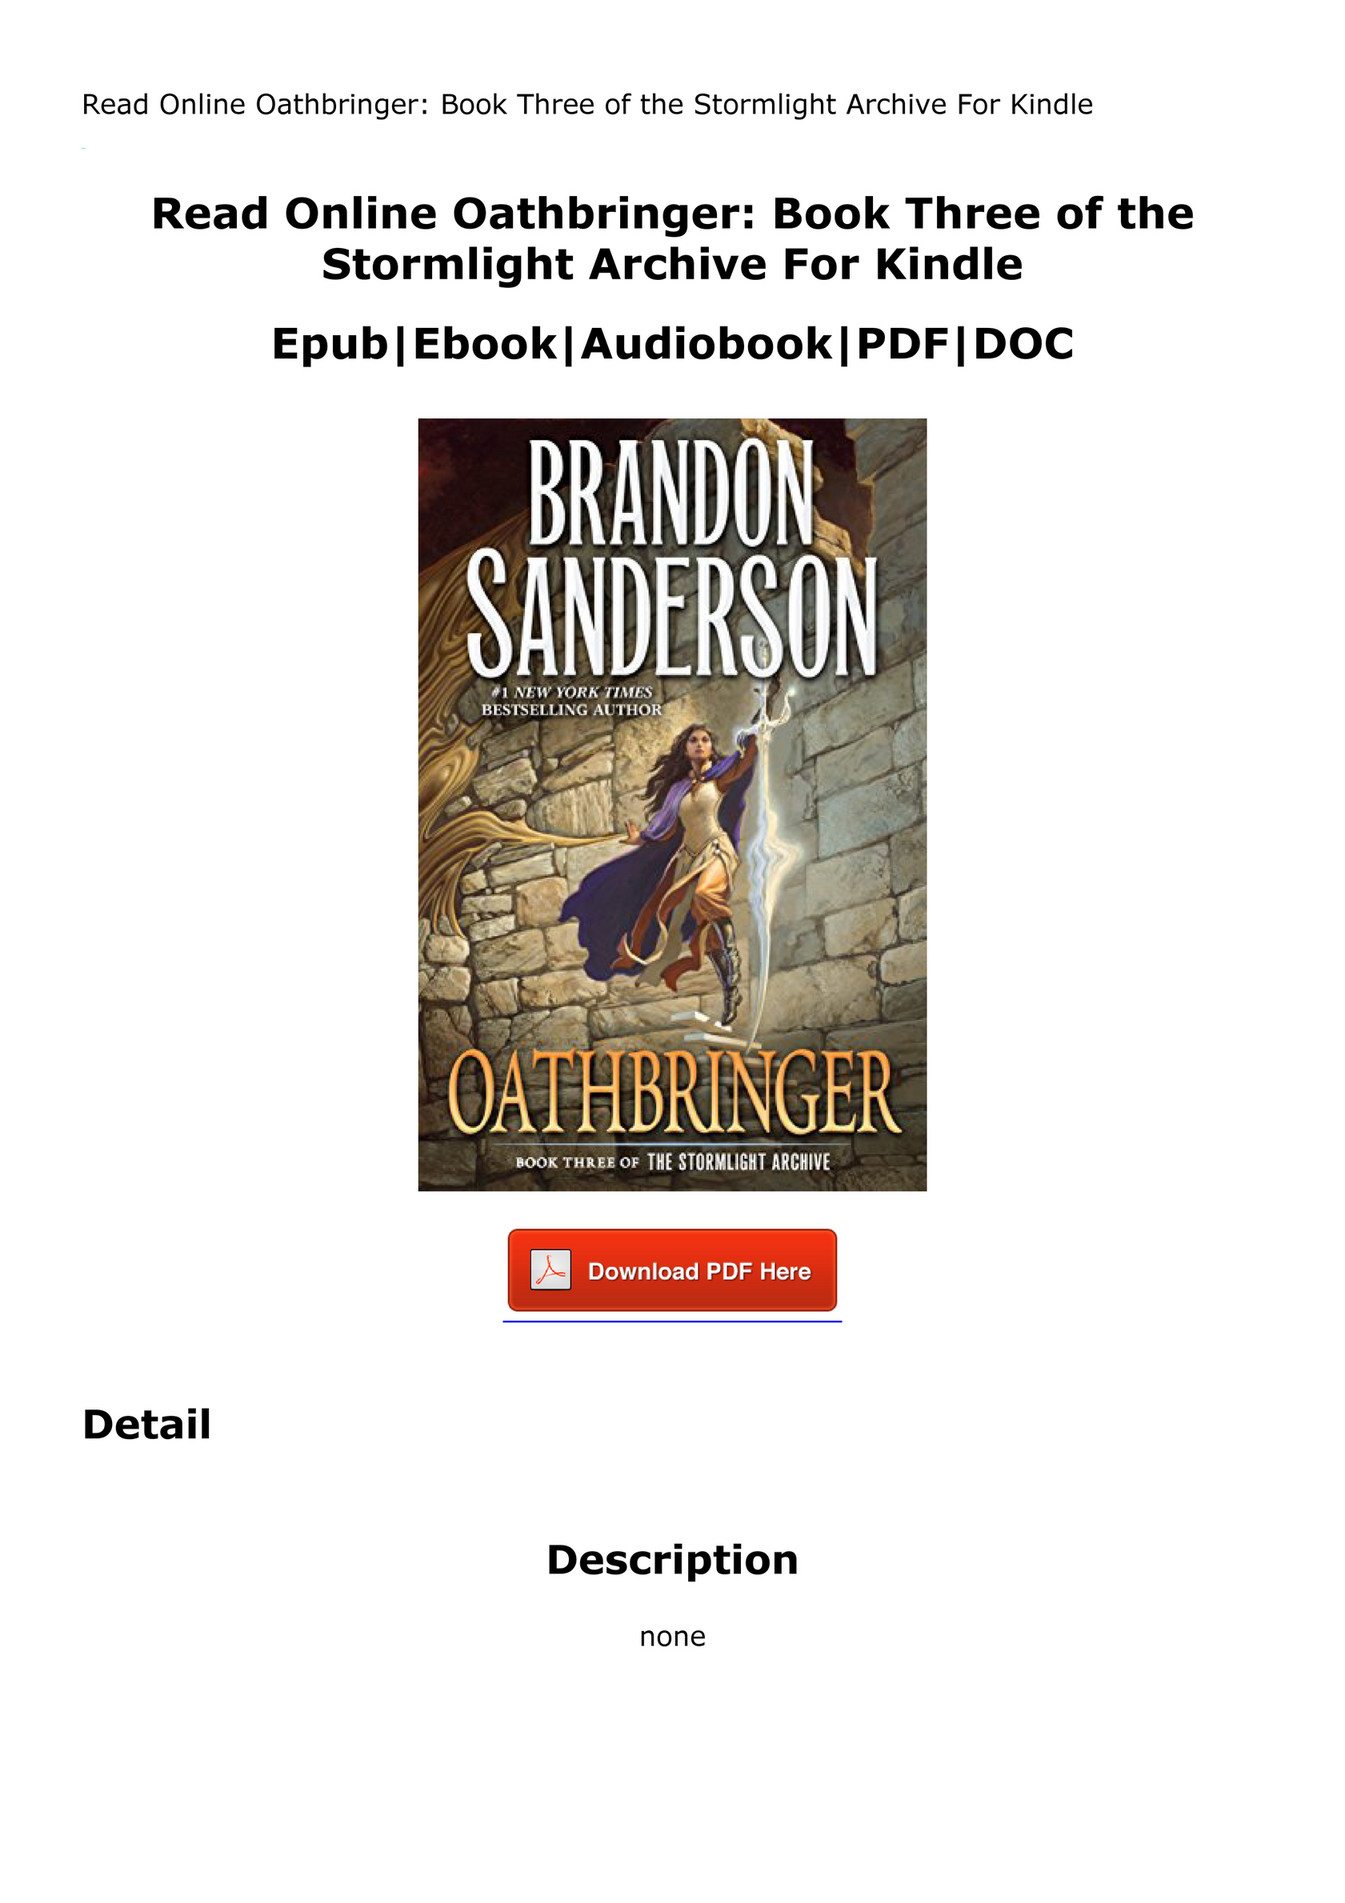 Boston Read Online Oathbringer Book Three Of The Stormlight